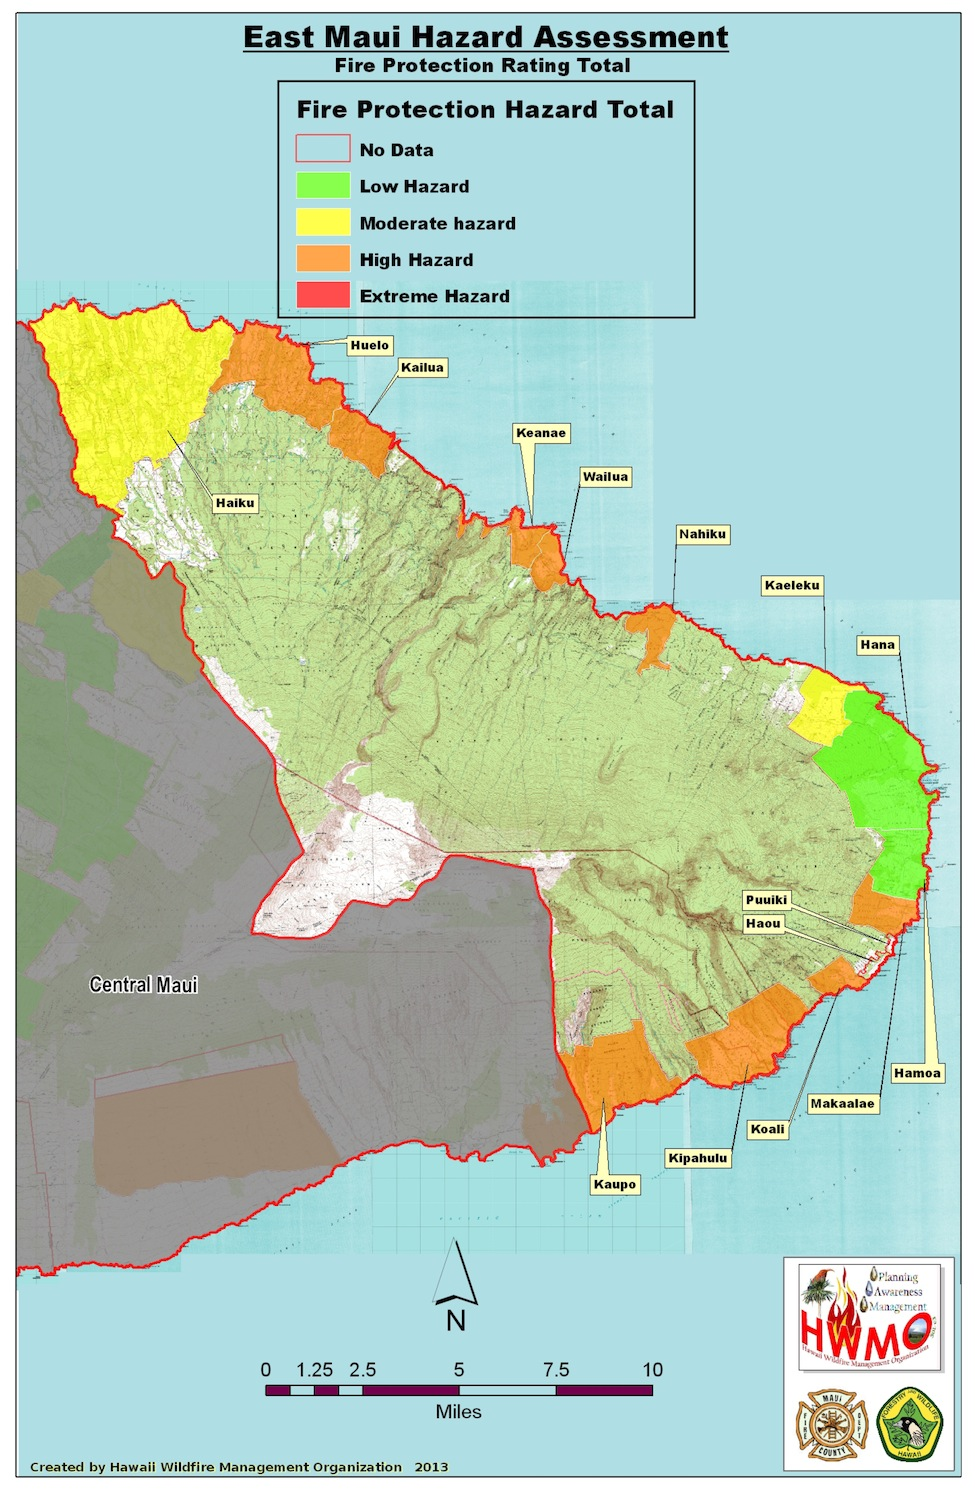 Community Wildfire Hazard Assessments Maui East Hawaii